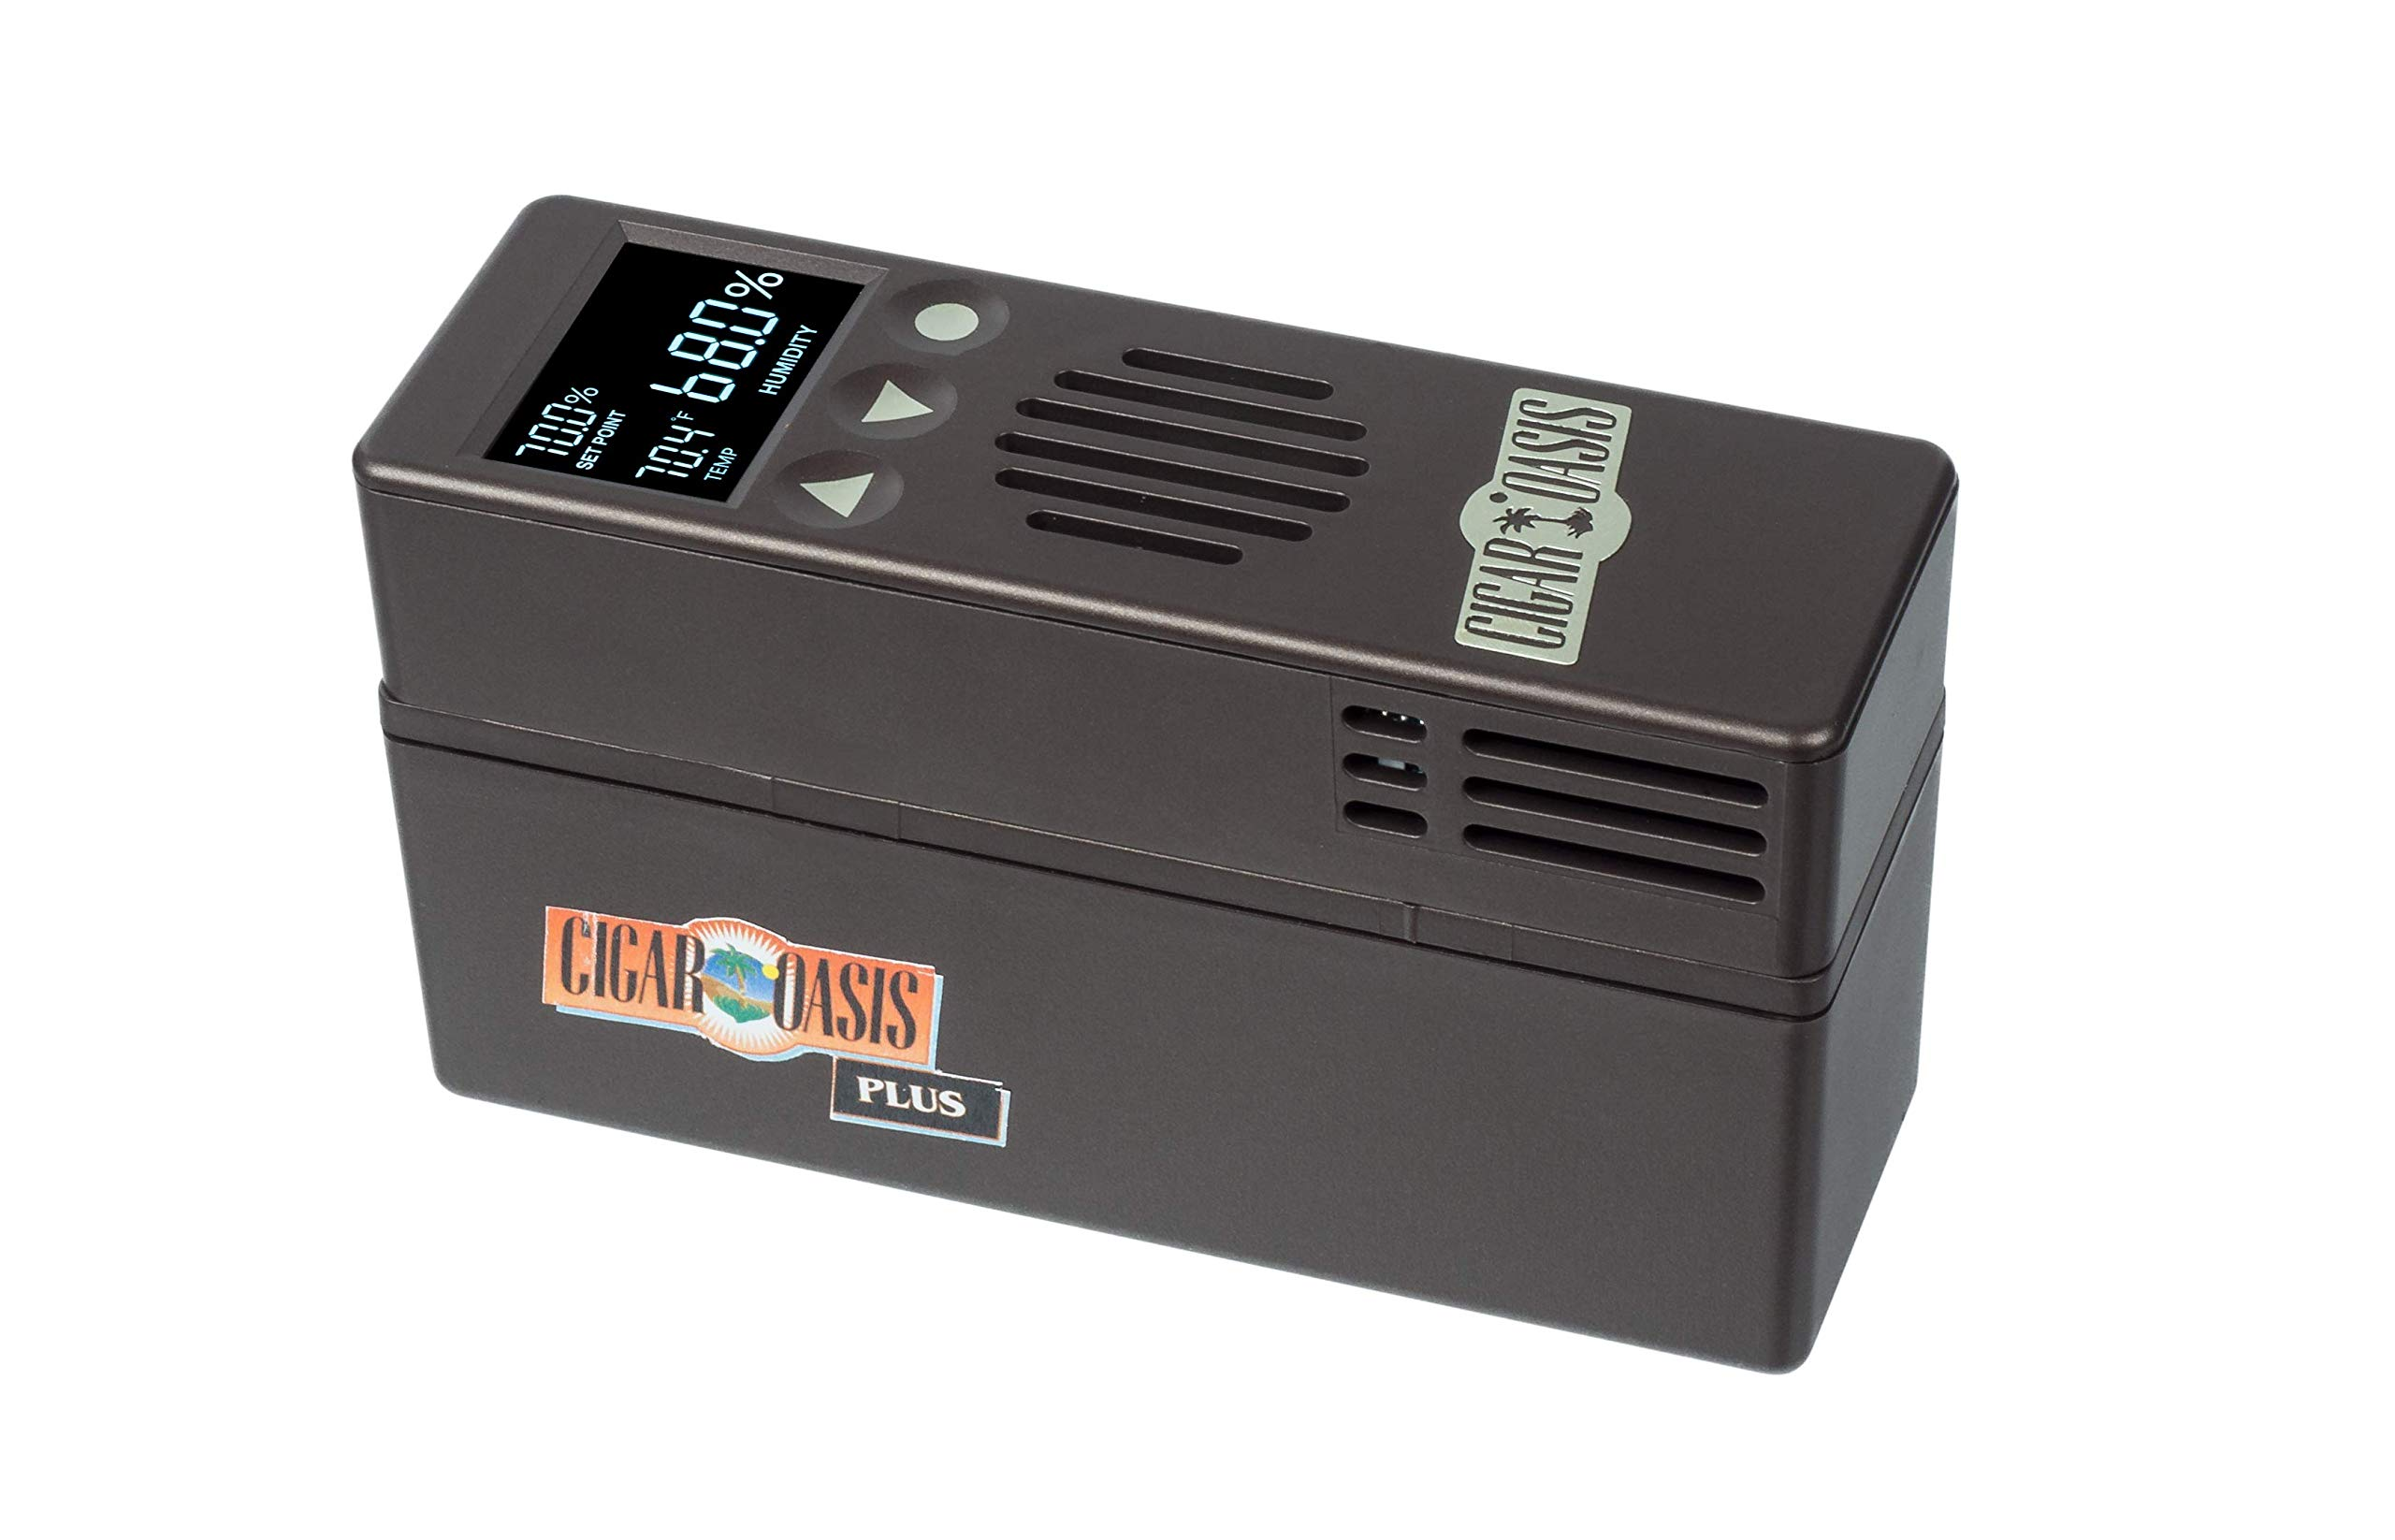 Cigar Oasis Plus 3.0 Electronic Humidifier for end-table humidors 4-10 cubic feet (300-1000 cigar capacity) by Cigar Oasis (Image #1)